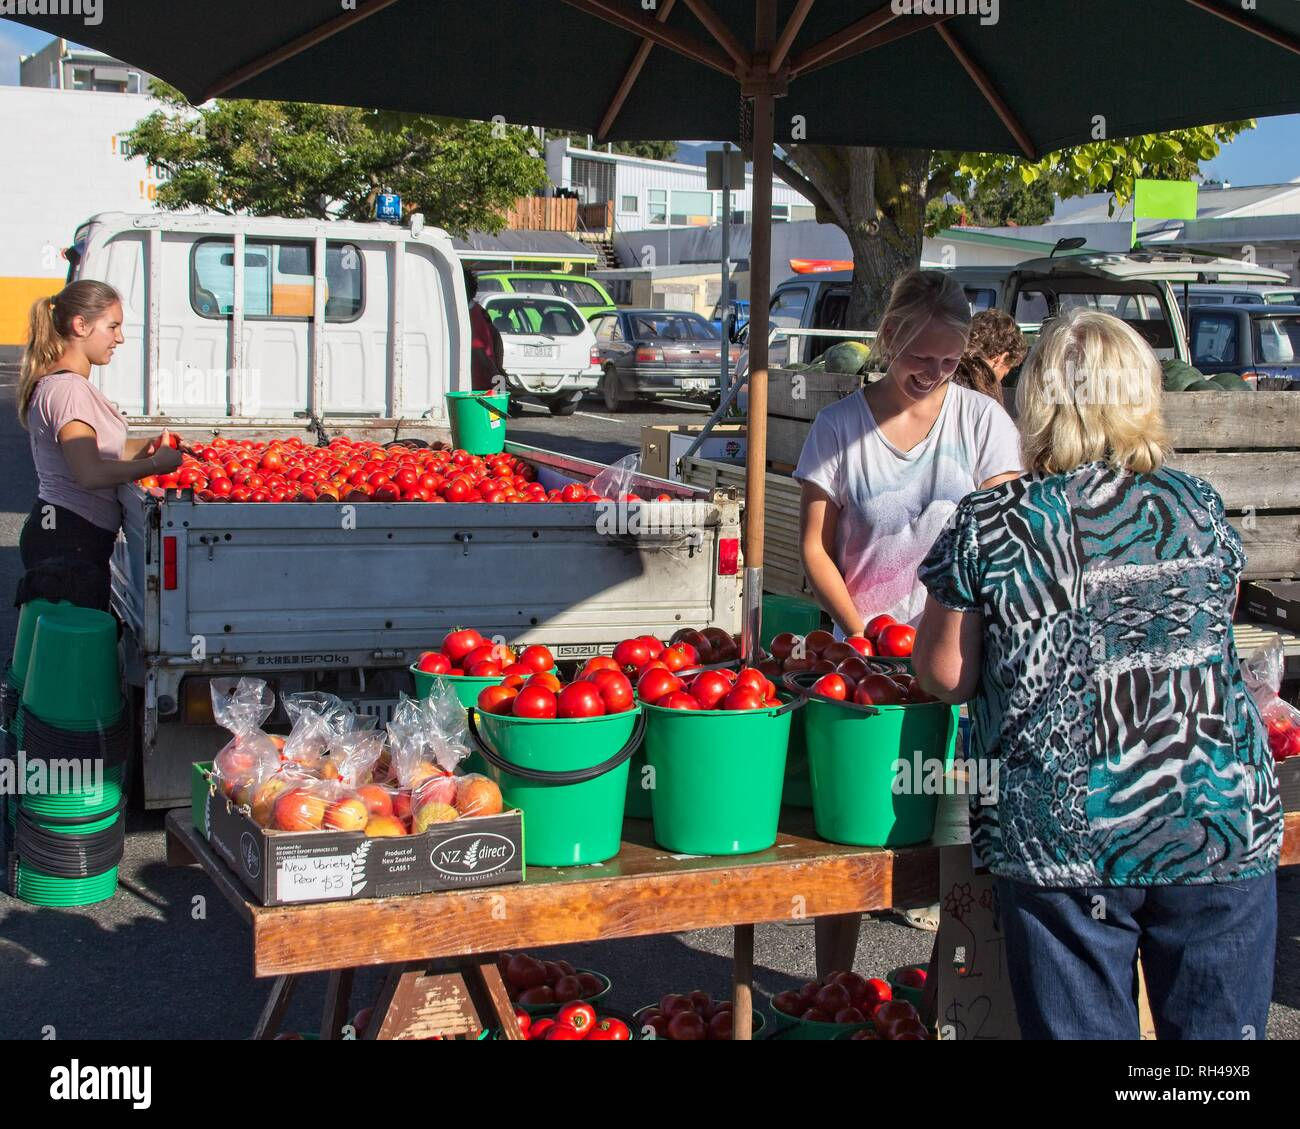 Bucket Load Stock Photos & Bucket Load Stock Images - Alamy